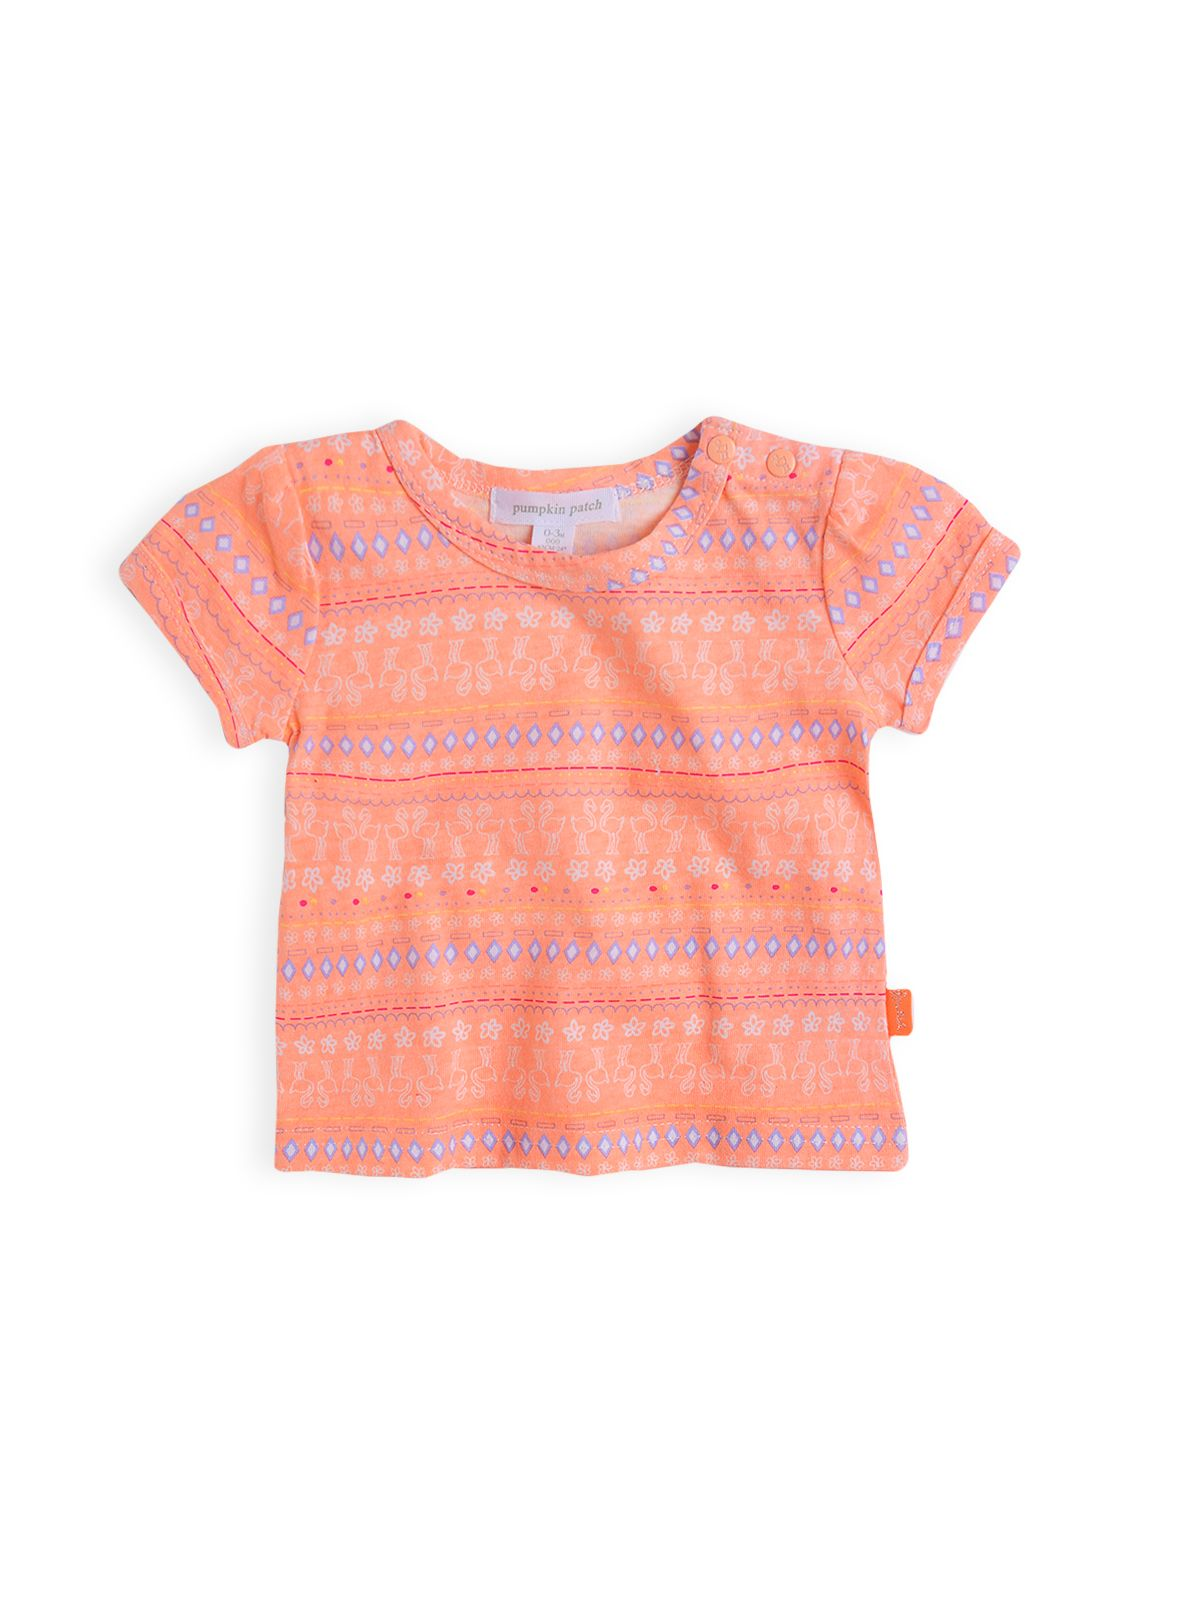 Girls flamingo aztec top